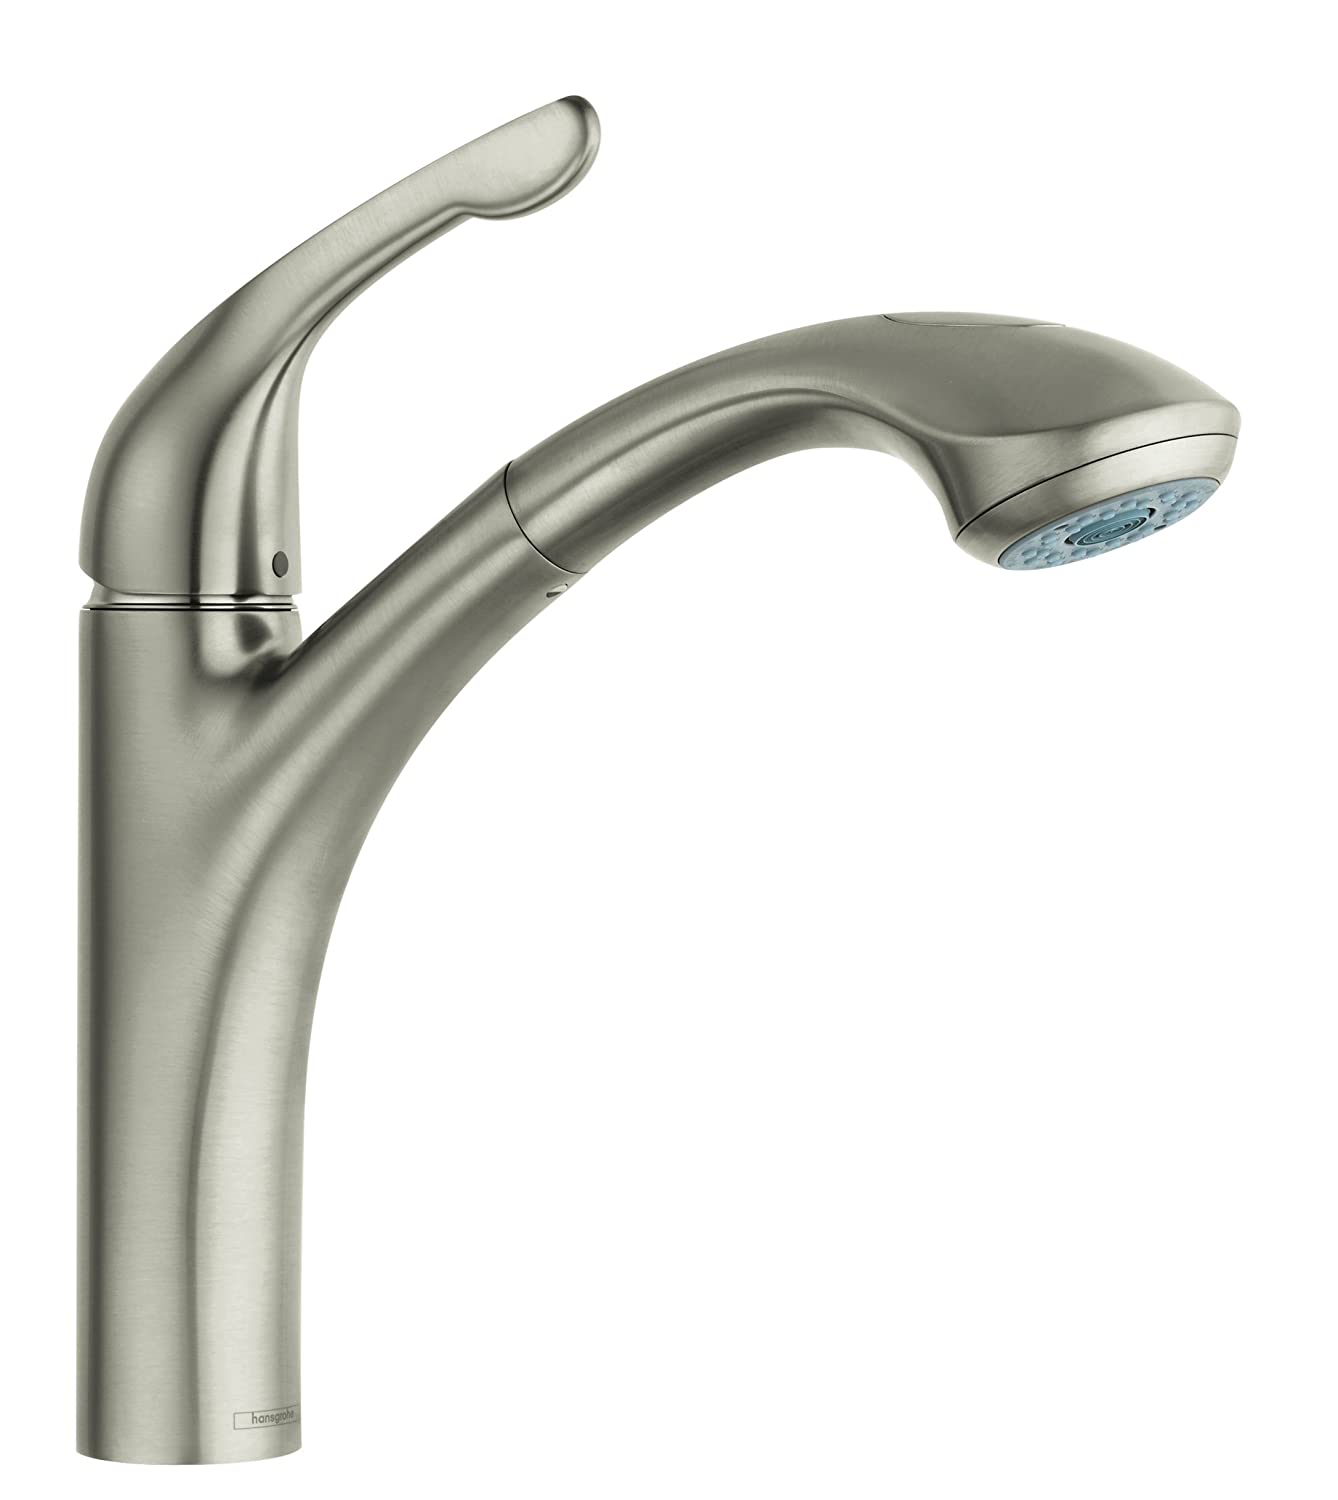 "Hansgrohe 04076860 Allegro E Single Hole, Low Arc 1.75GPM 2 Spray Kitchen Faucet 12.6"" Height Steel Optic"